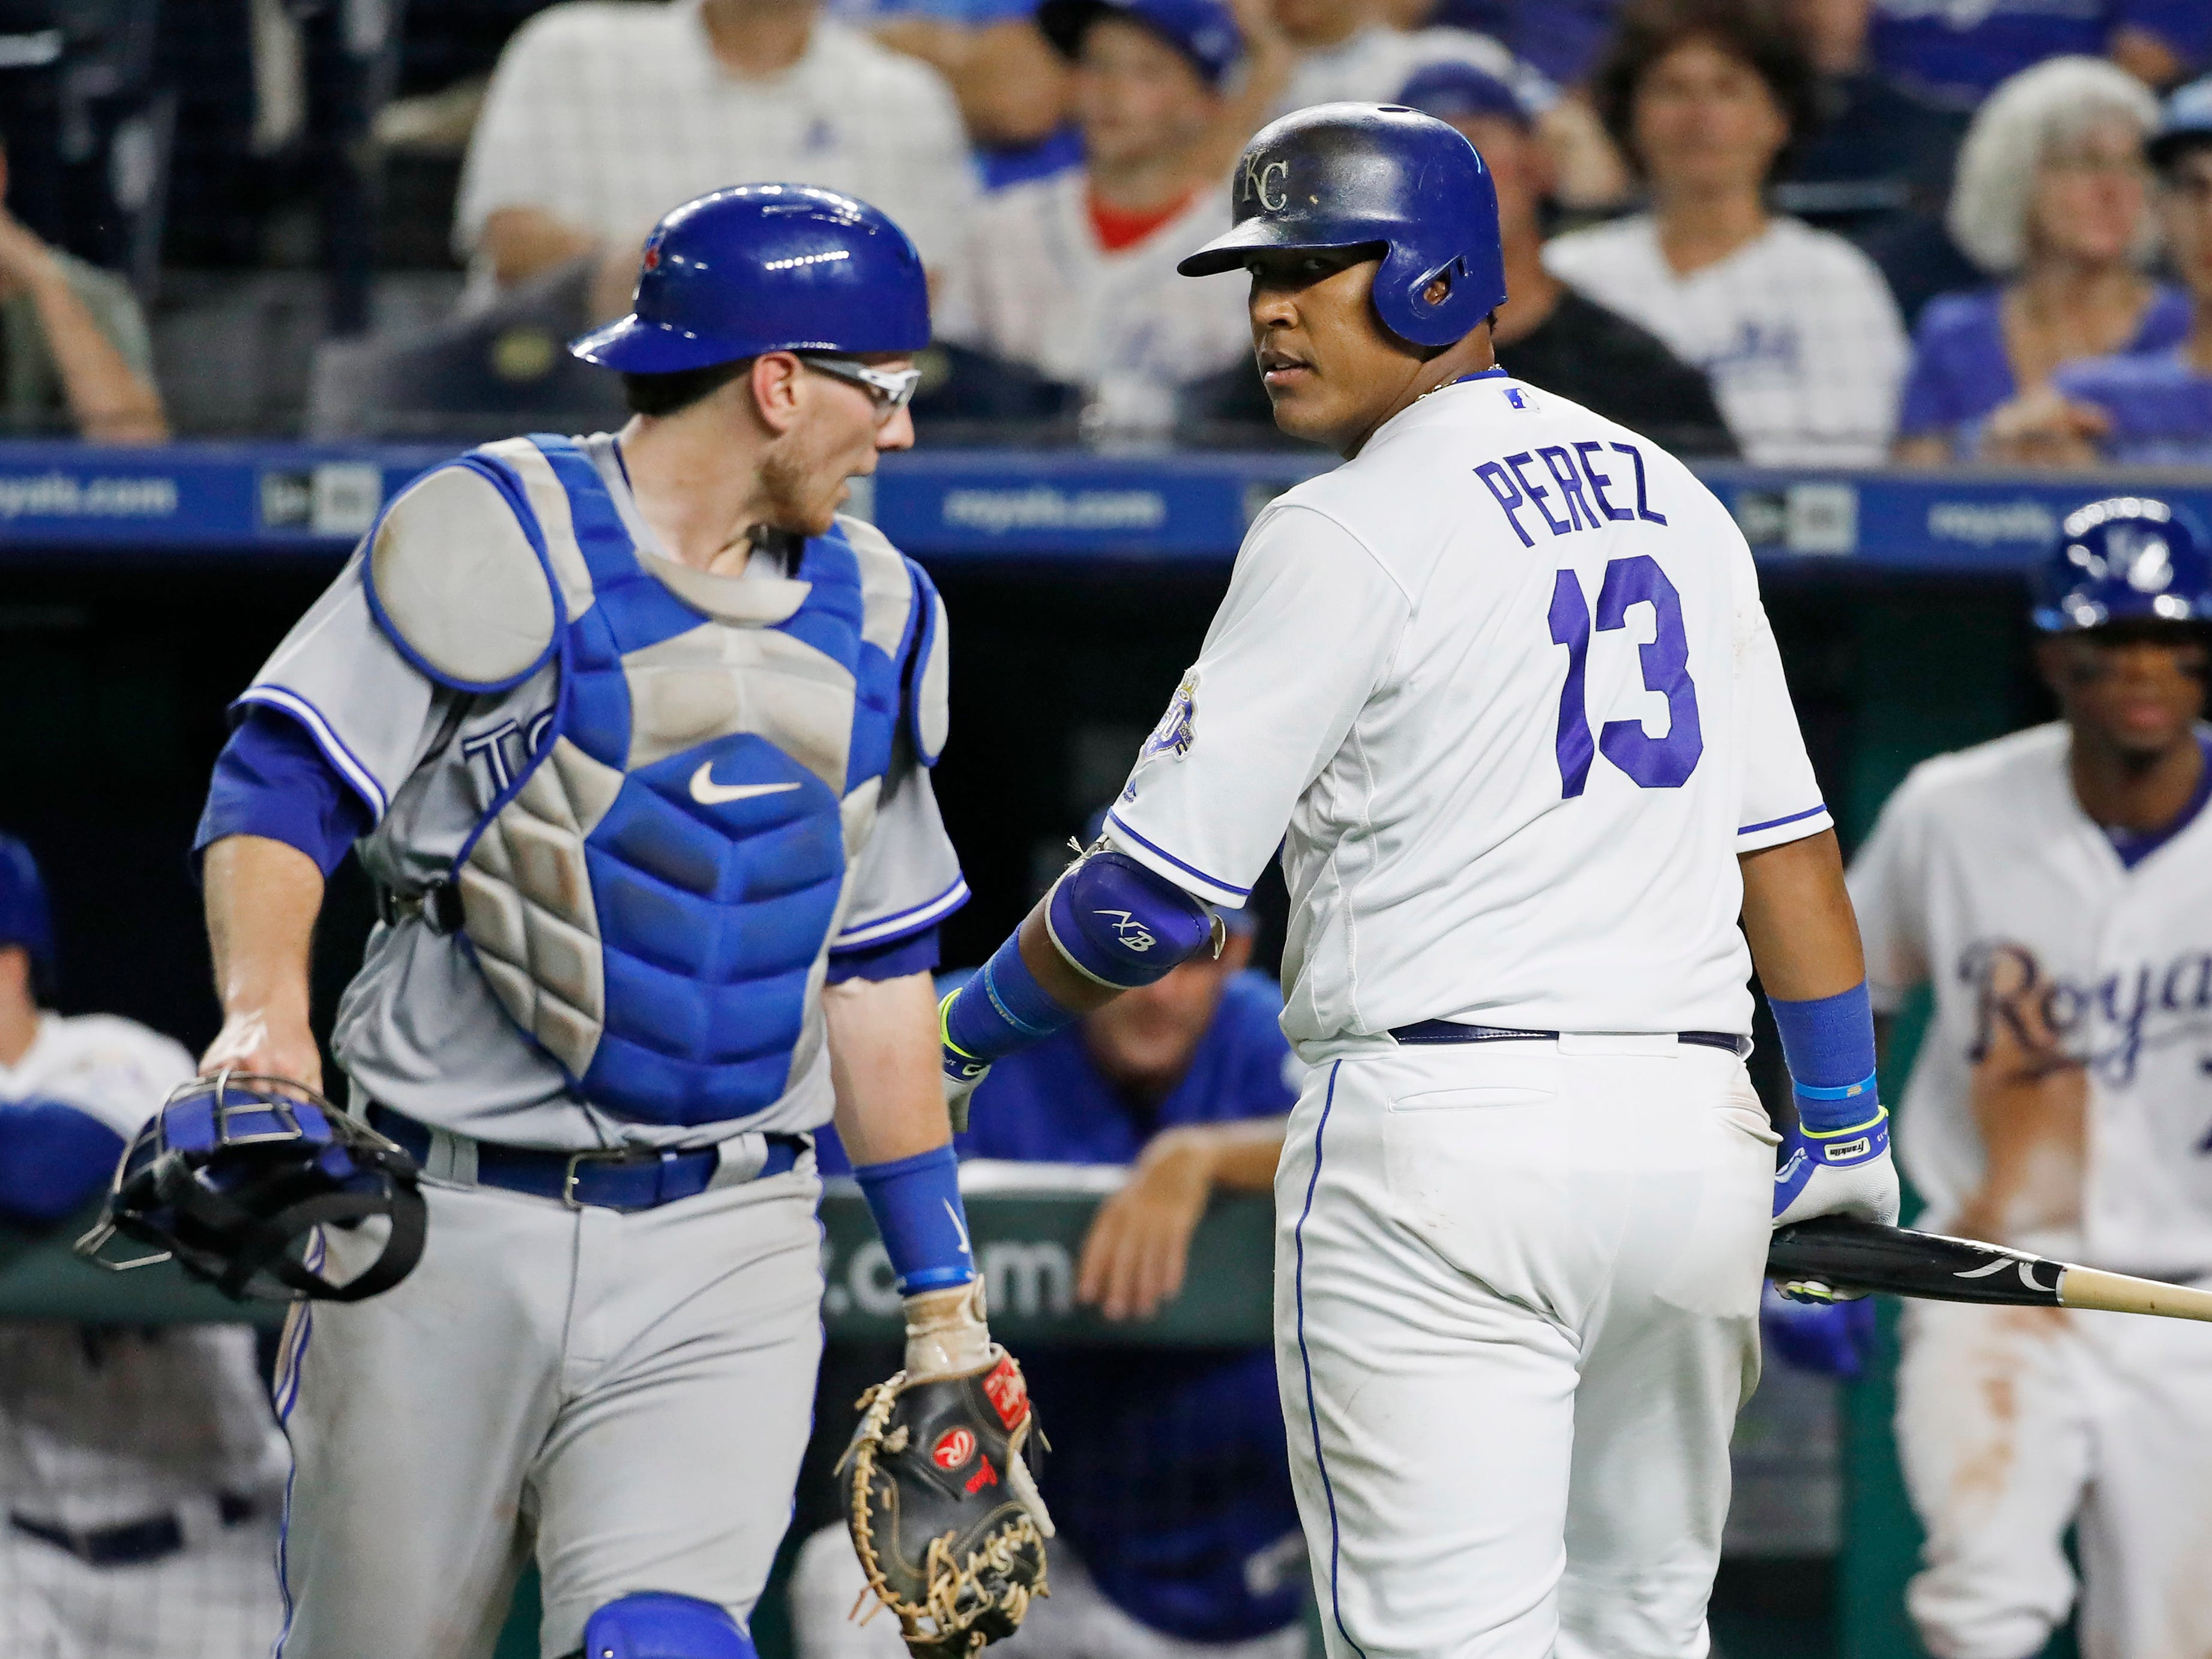 Kansas City Royals' Salvador Perez (13) looks back at Toronto Blue Jays catcher Danny Jansen (9) as they exchange words after Perez was out on a popup in the eighth inning of a baseball game at Kauffman Stadium in Kansas City, Mo., Monday, Aug. 13, 2018. (AP Photo/Colin E. Braley)